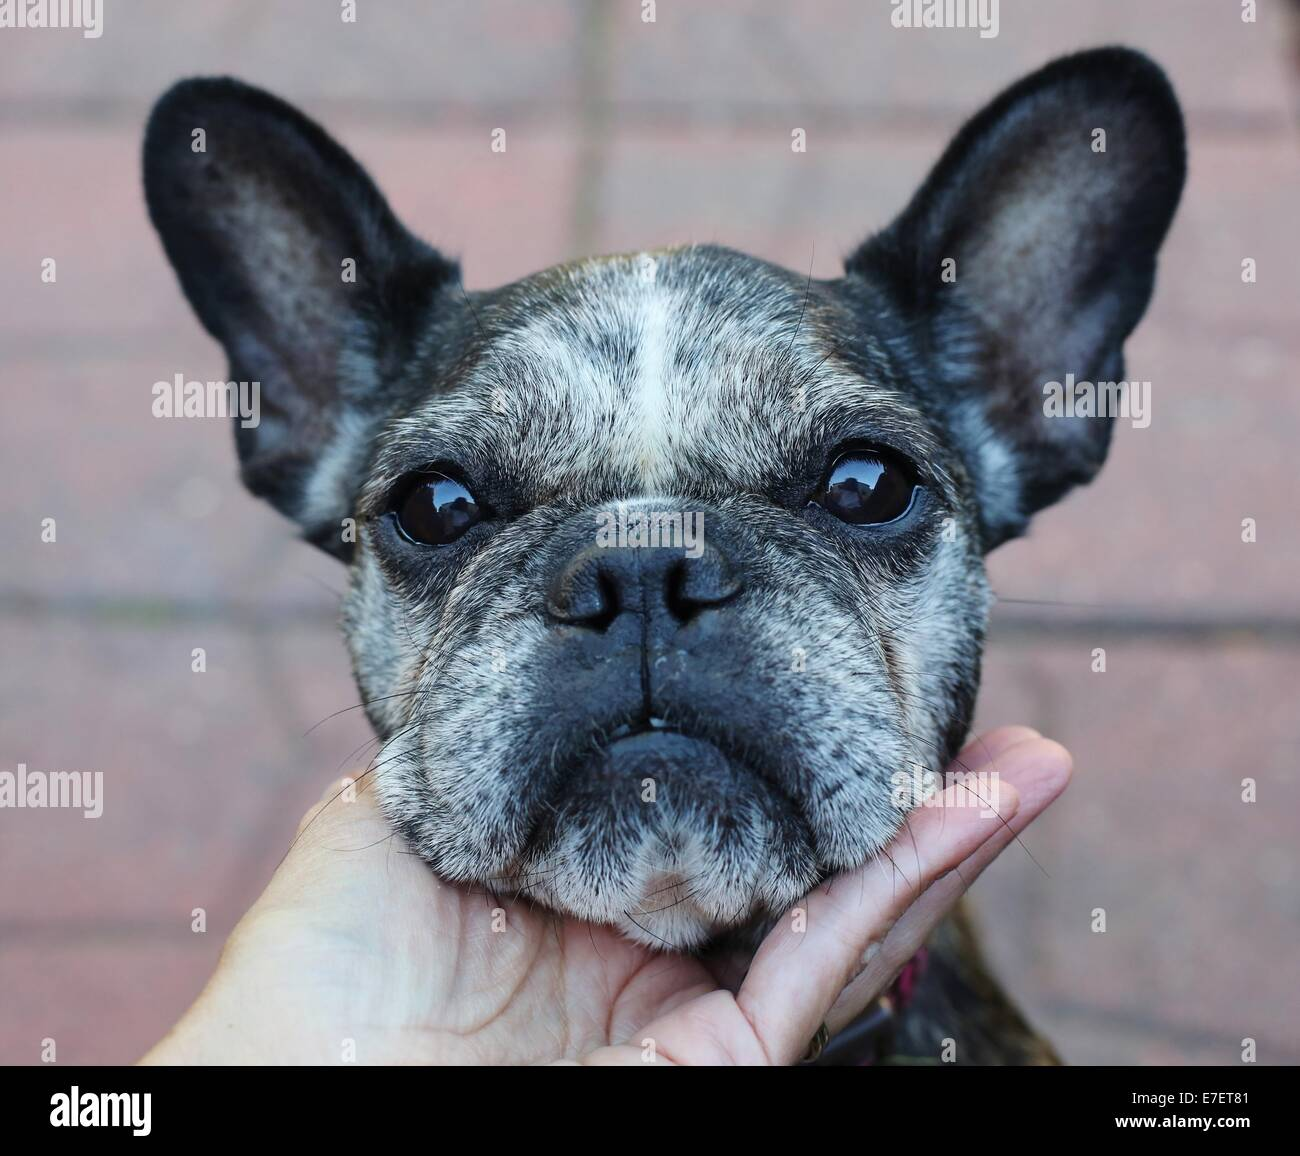 A person's hand, cupping the chin of a cute, old, gray-faced French Bulldog. Stock Photo